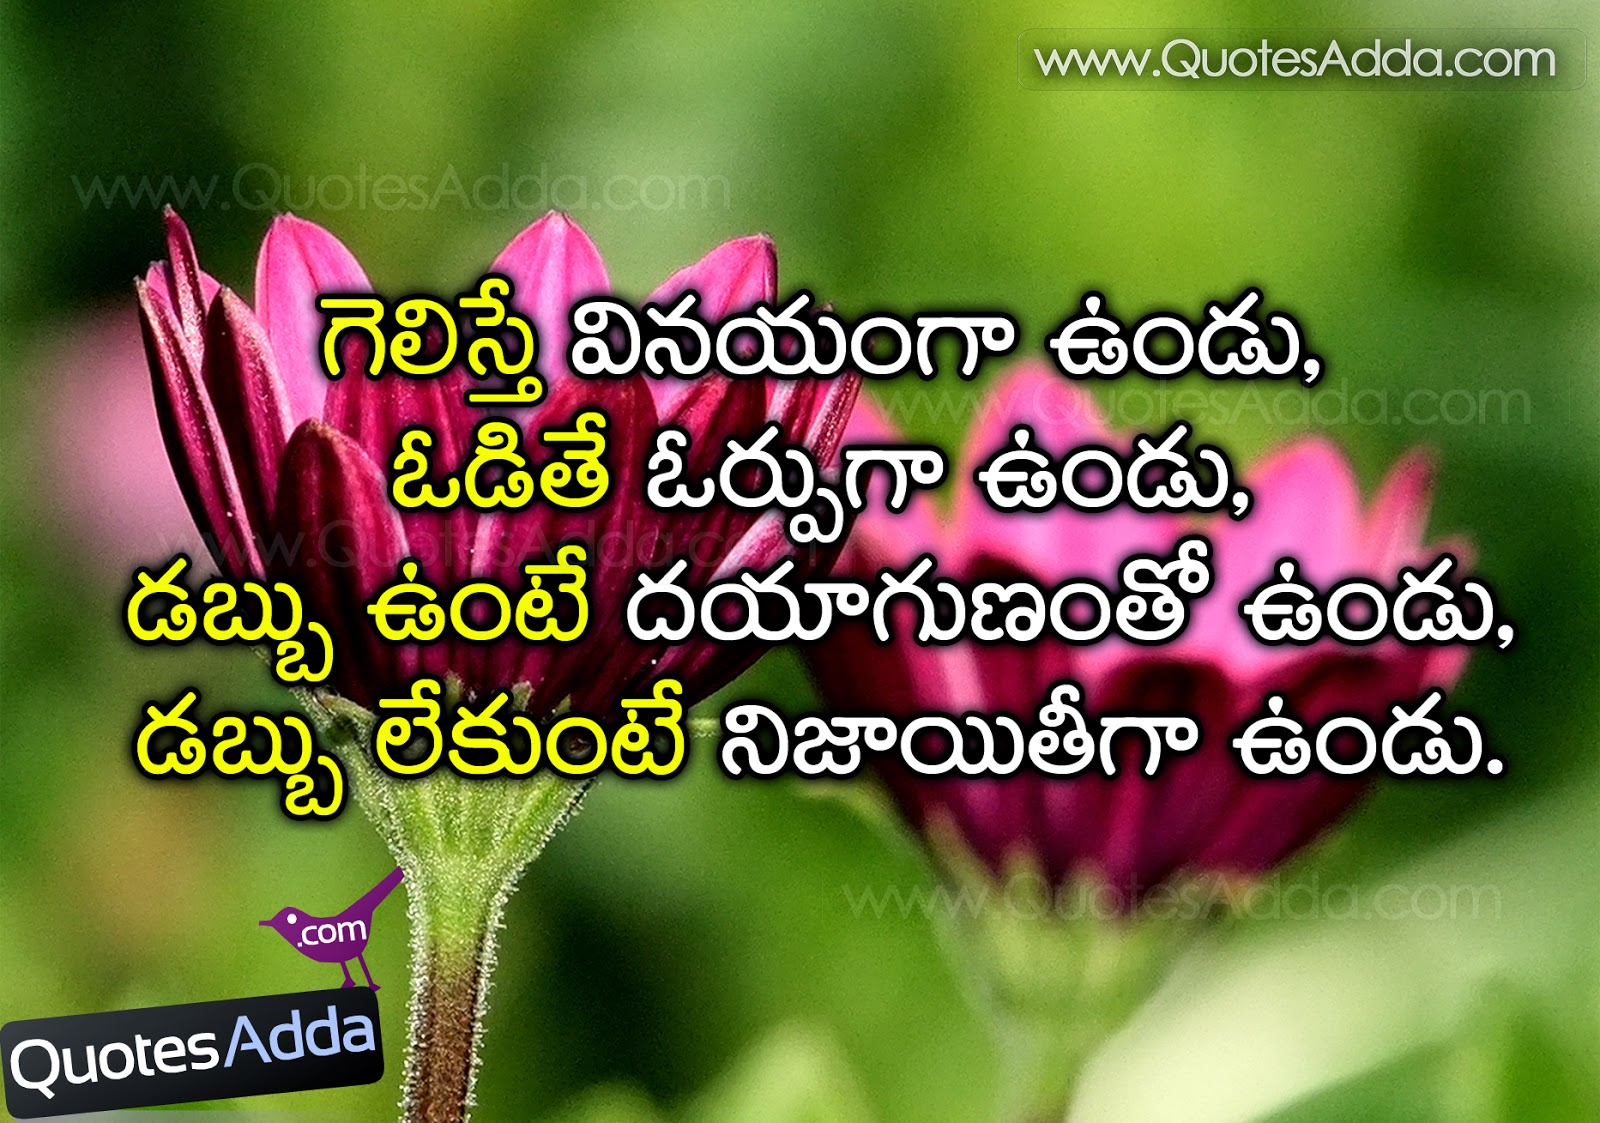 Good Quotes About Life And Love And Friendship Telugunicelifequotationsforlearnersjun05Quotesadda